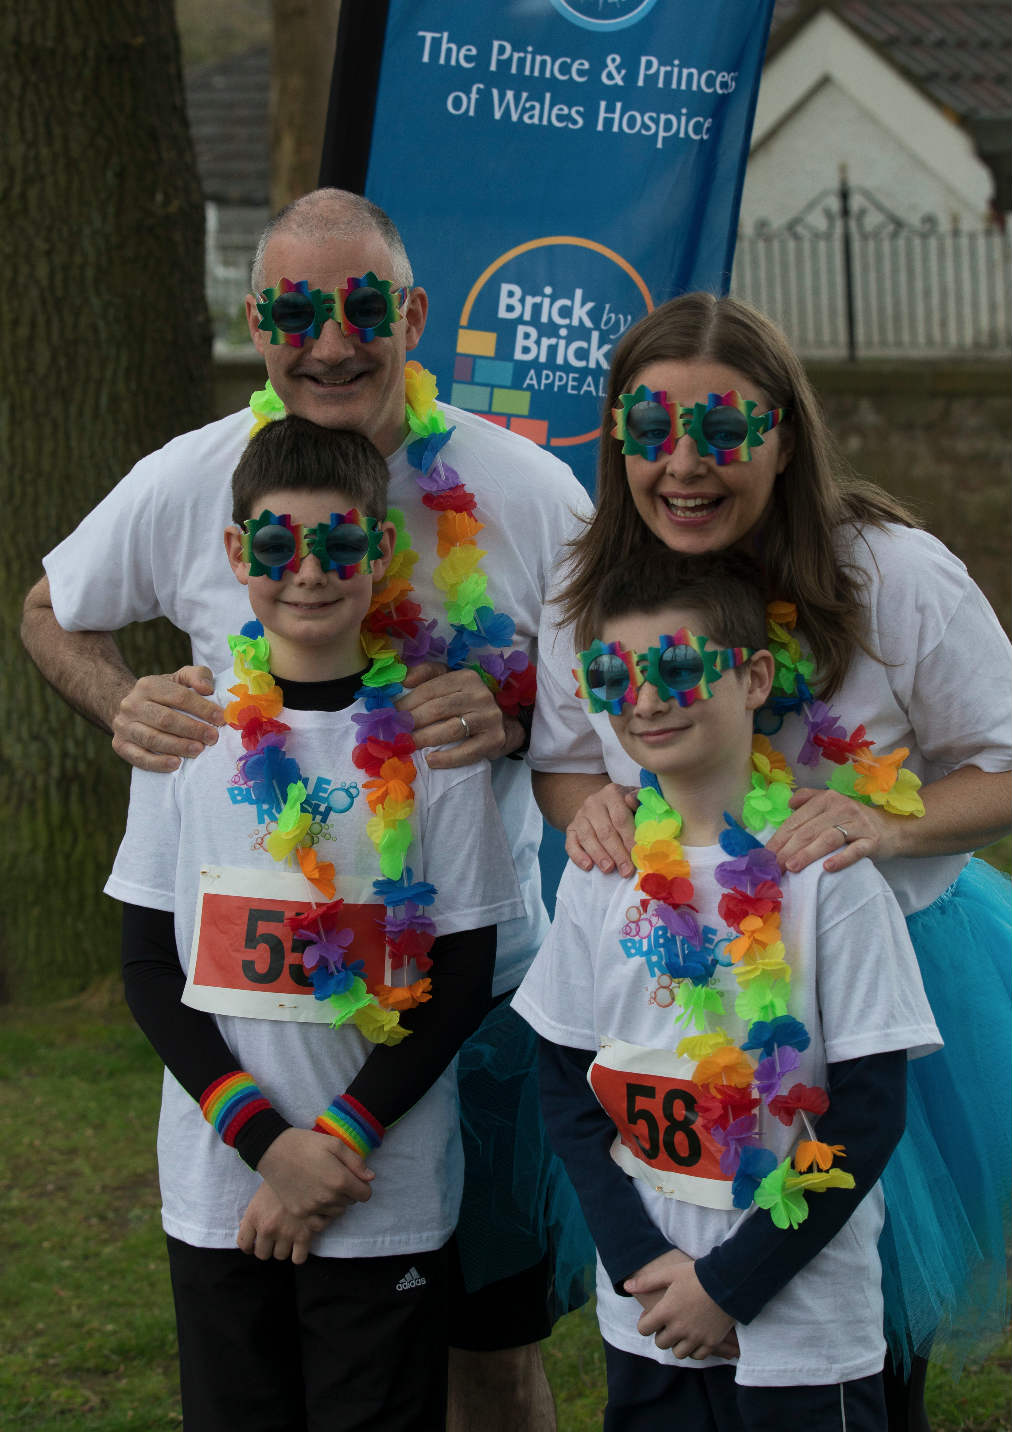 Susan and her family fundraising at Bubble Rush for Glasgow's Hospice